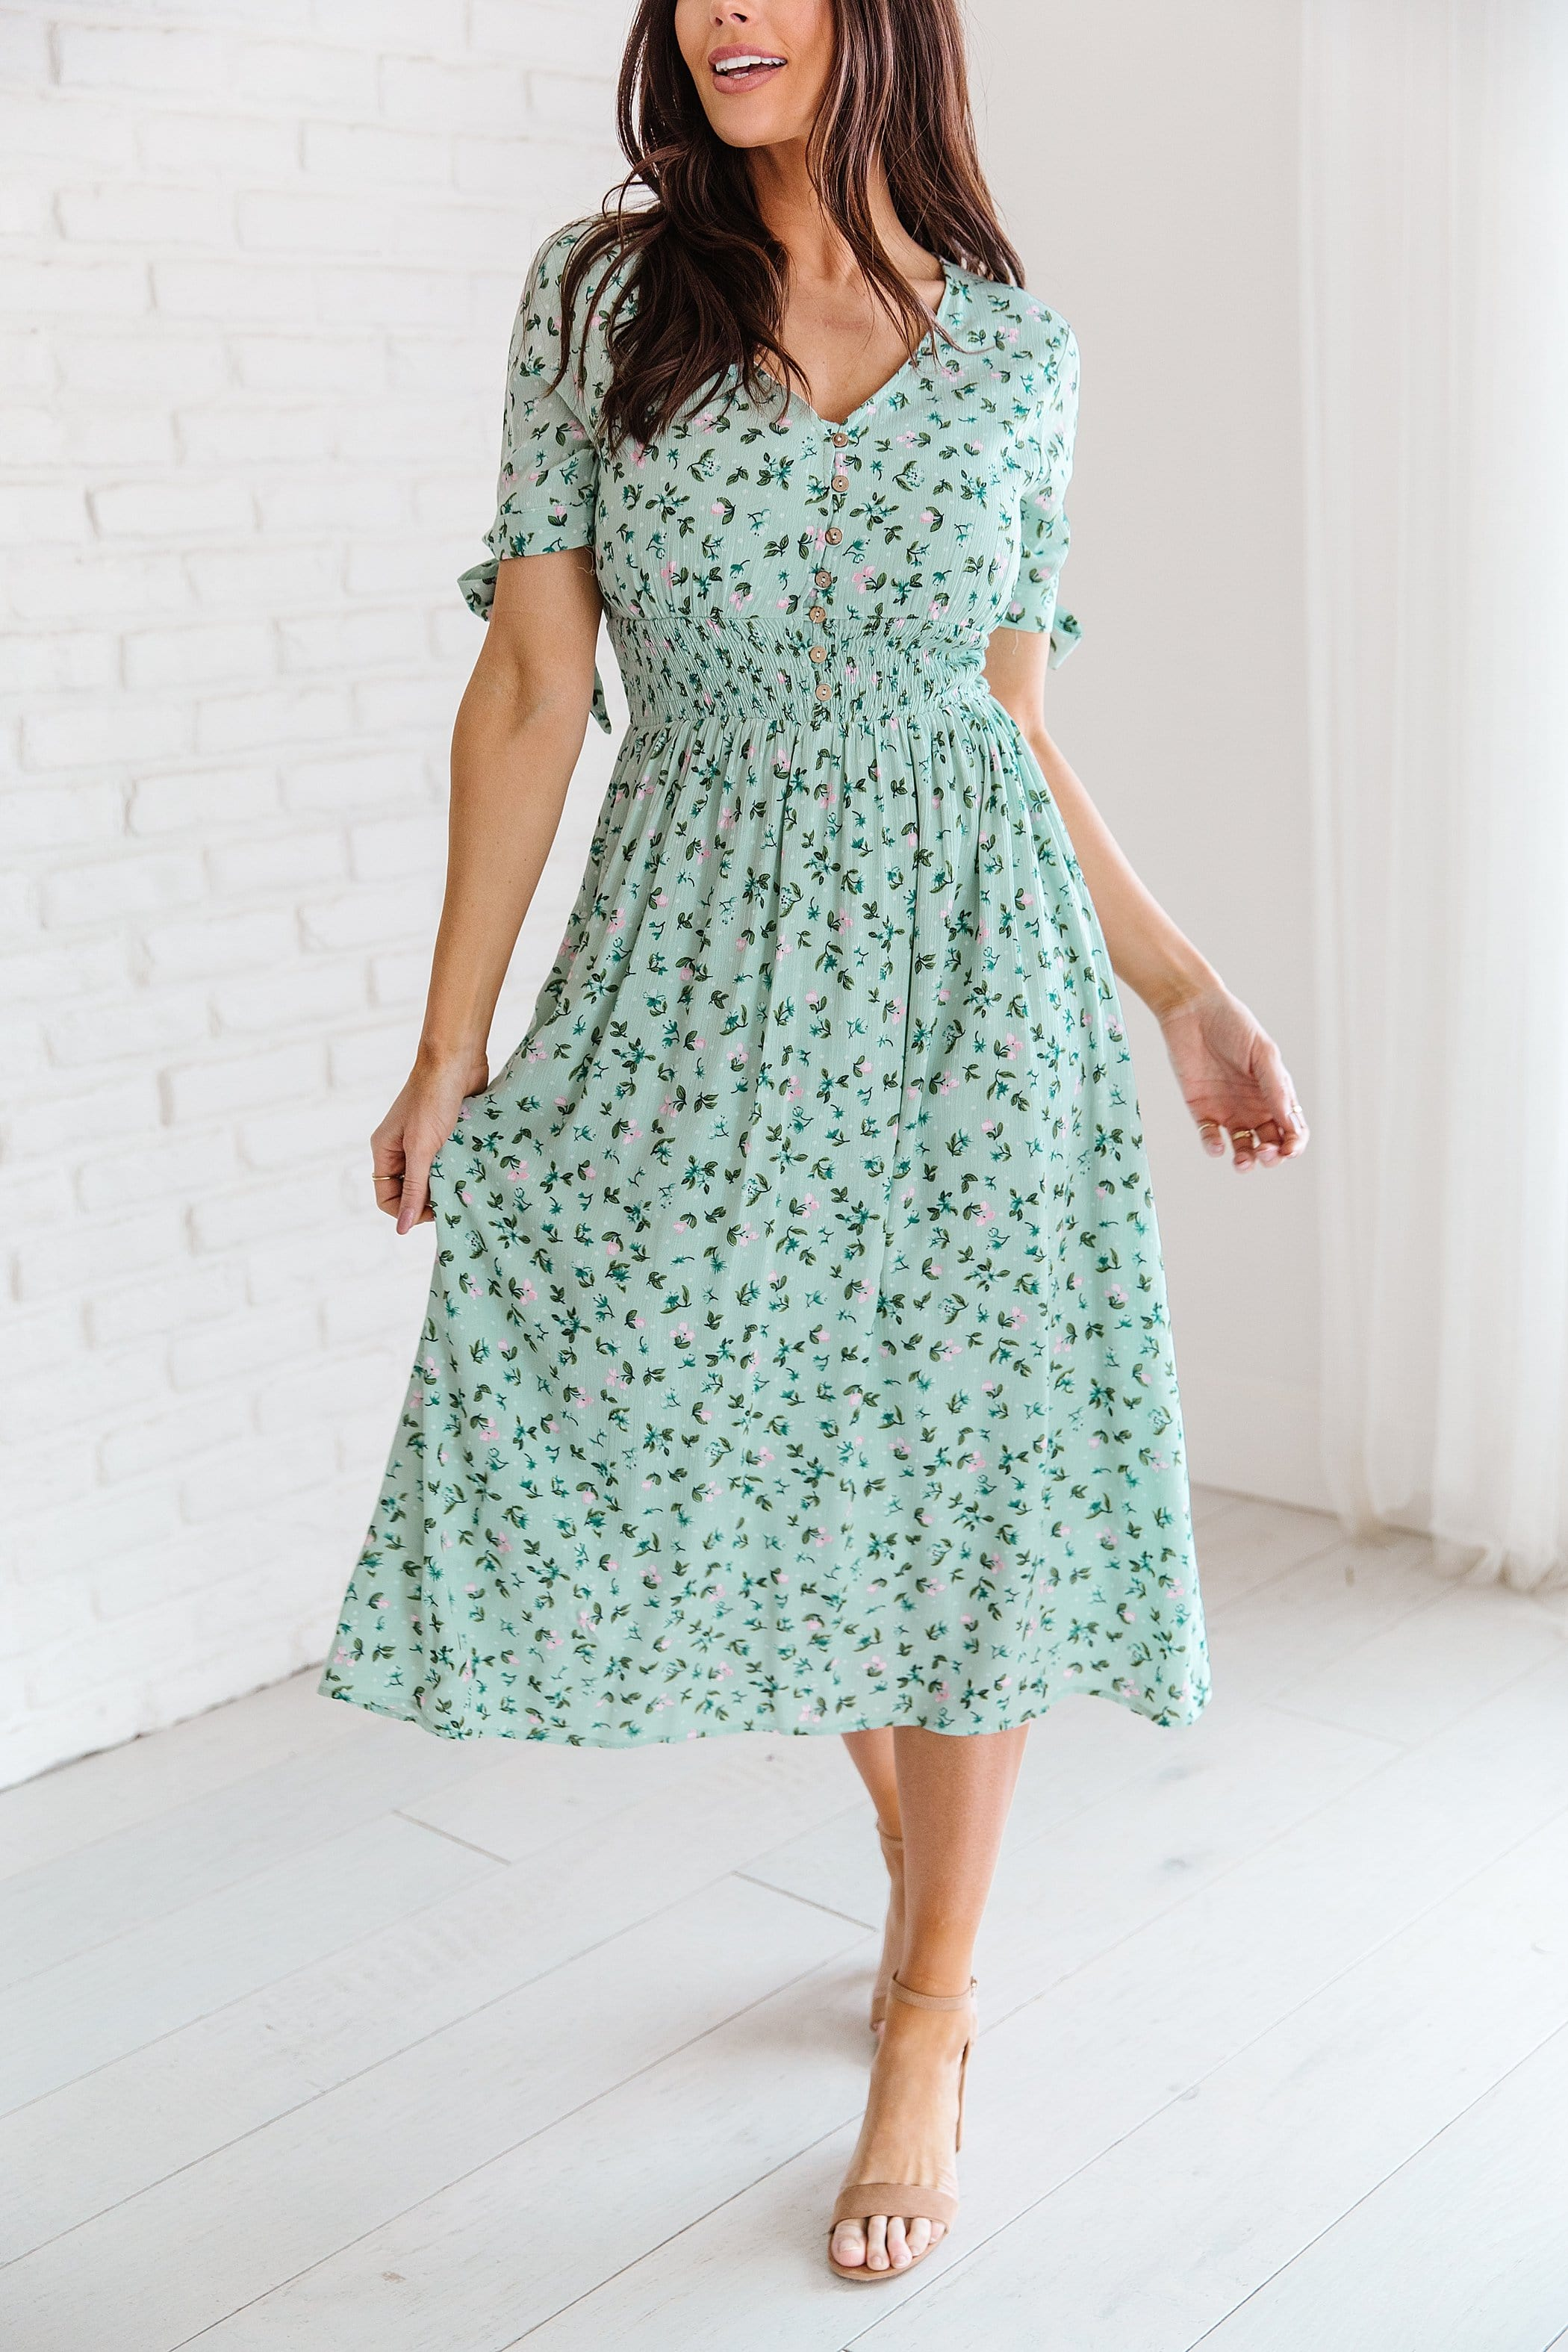 The Esther Floral Midi Dress in Mint